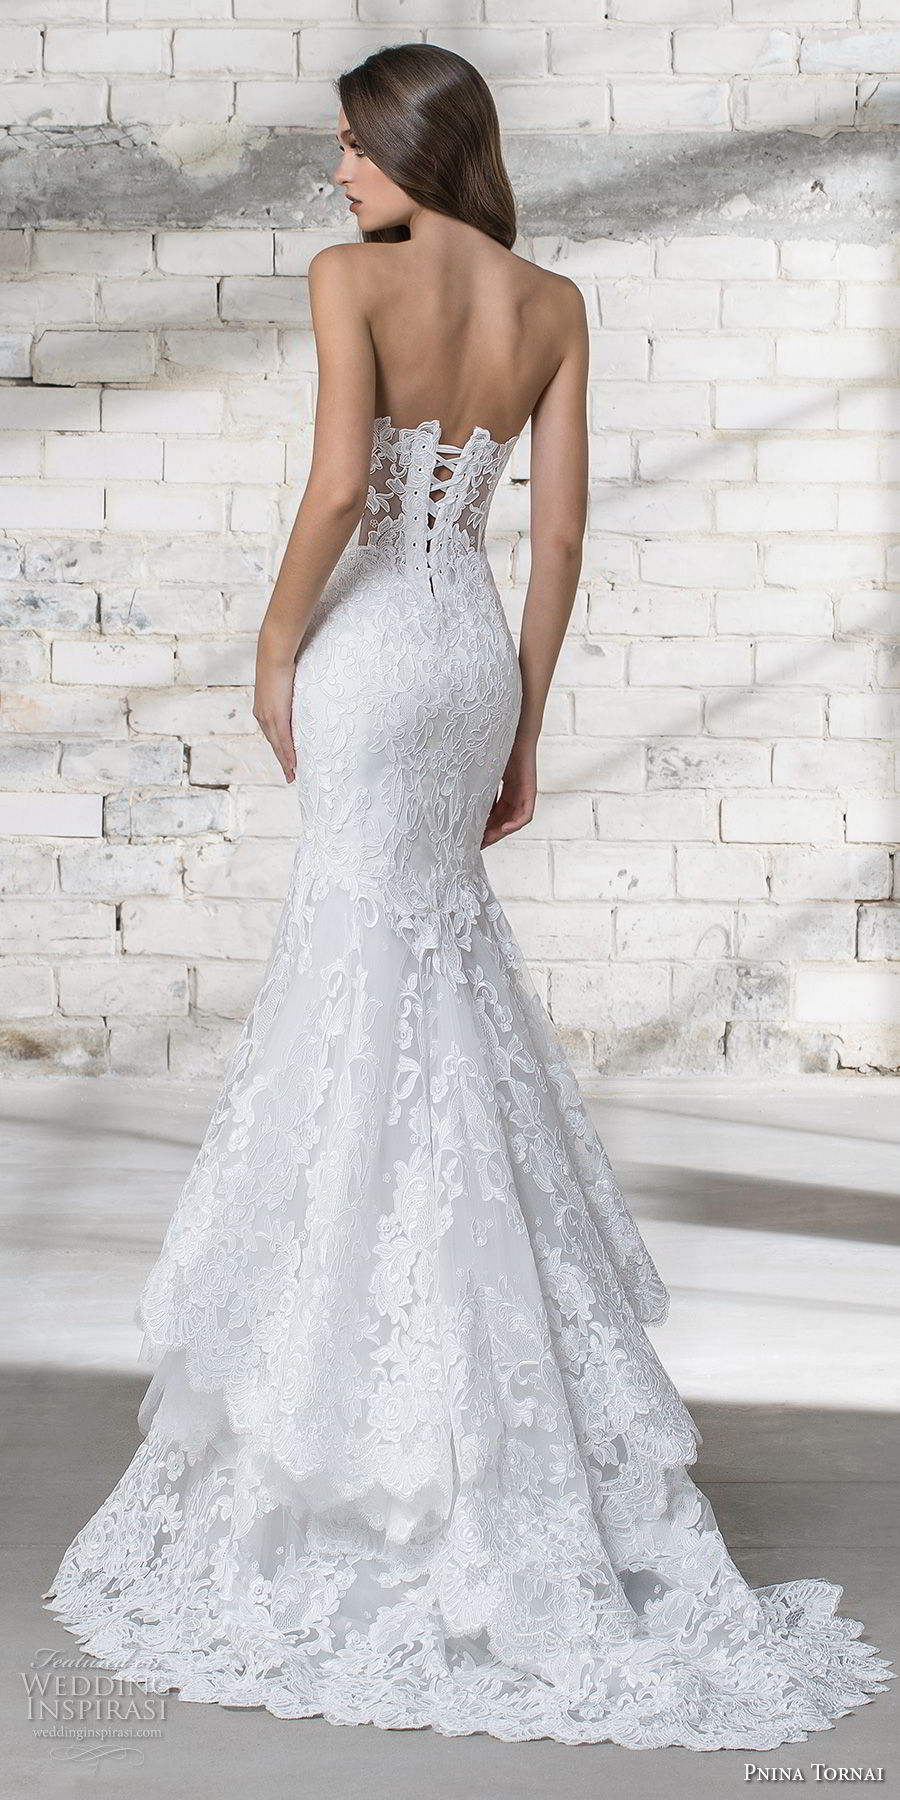 pnina tornai 2019 love bridal strapless deep plunging sweetheart neckline full embellished tiered skirt elegant romantic mermaid wedding dress corset back sweep train (14) bv